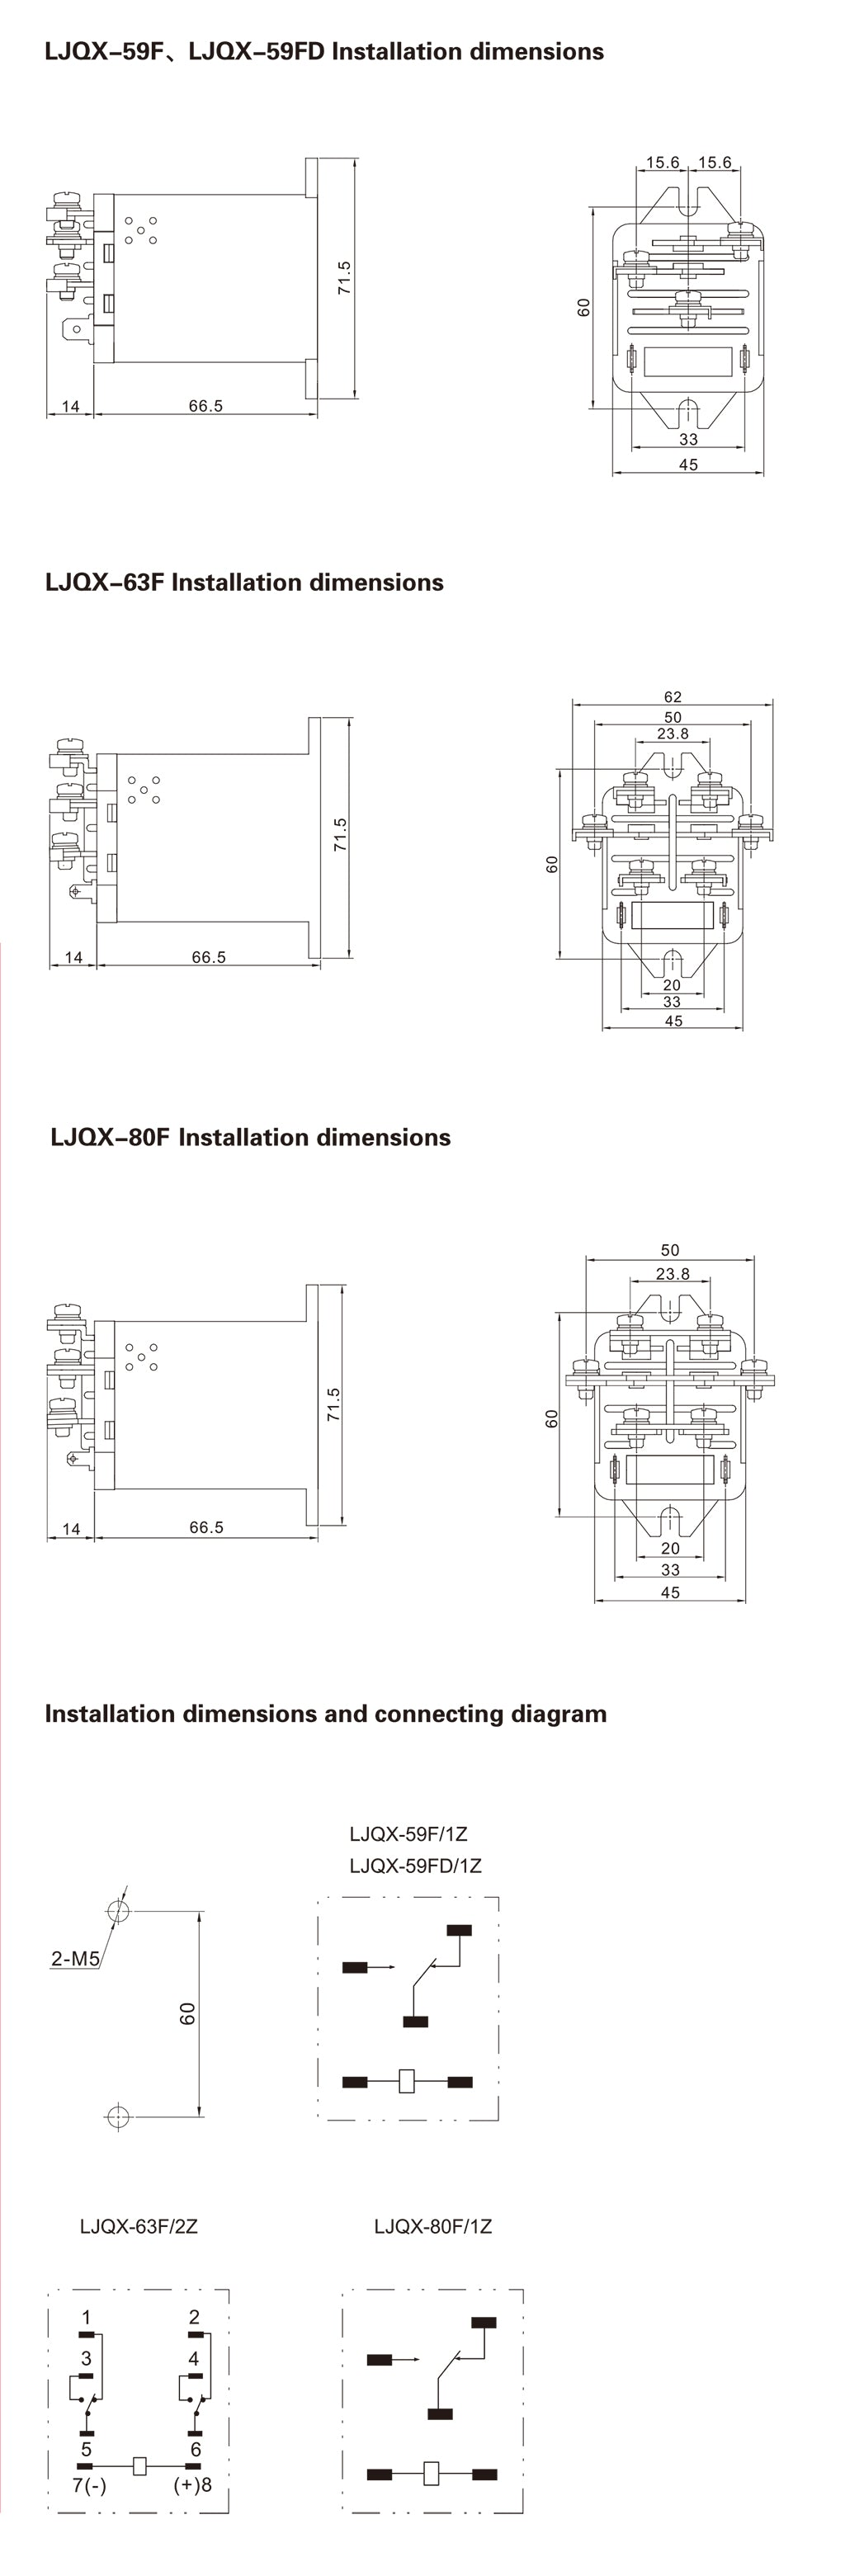 LJQX-80F_Installation_Dimensions_and_Connection_Diagram